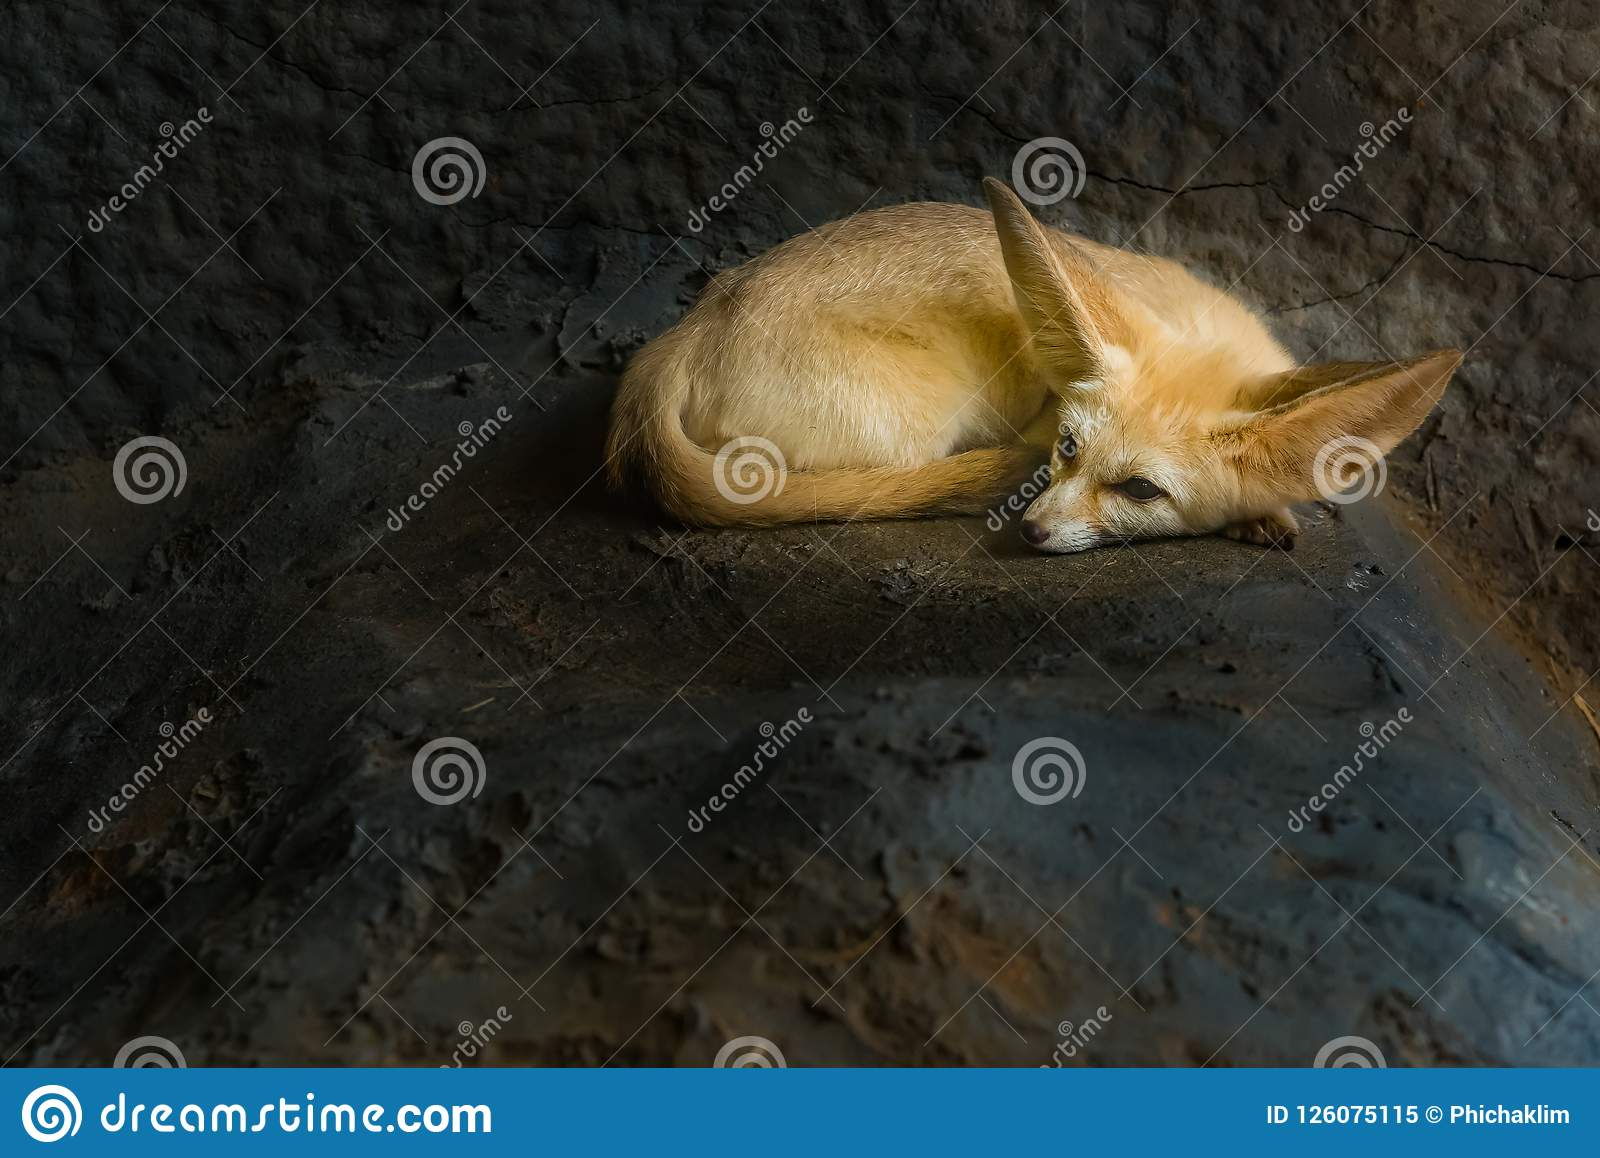 A Fennec fox is resting in a den